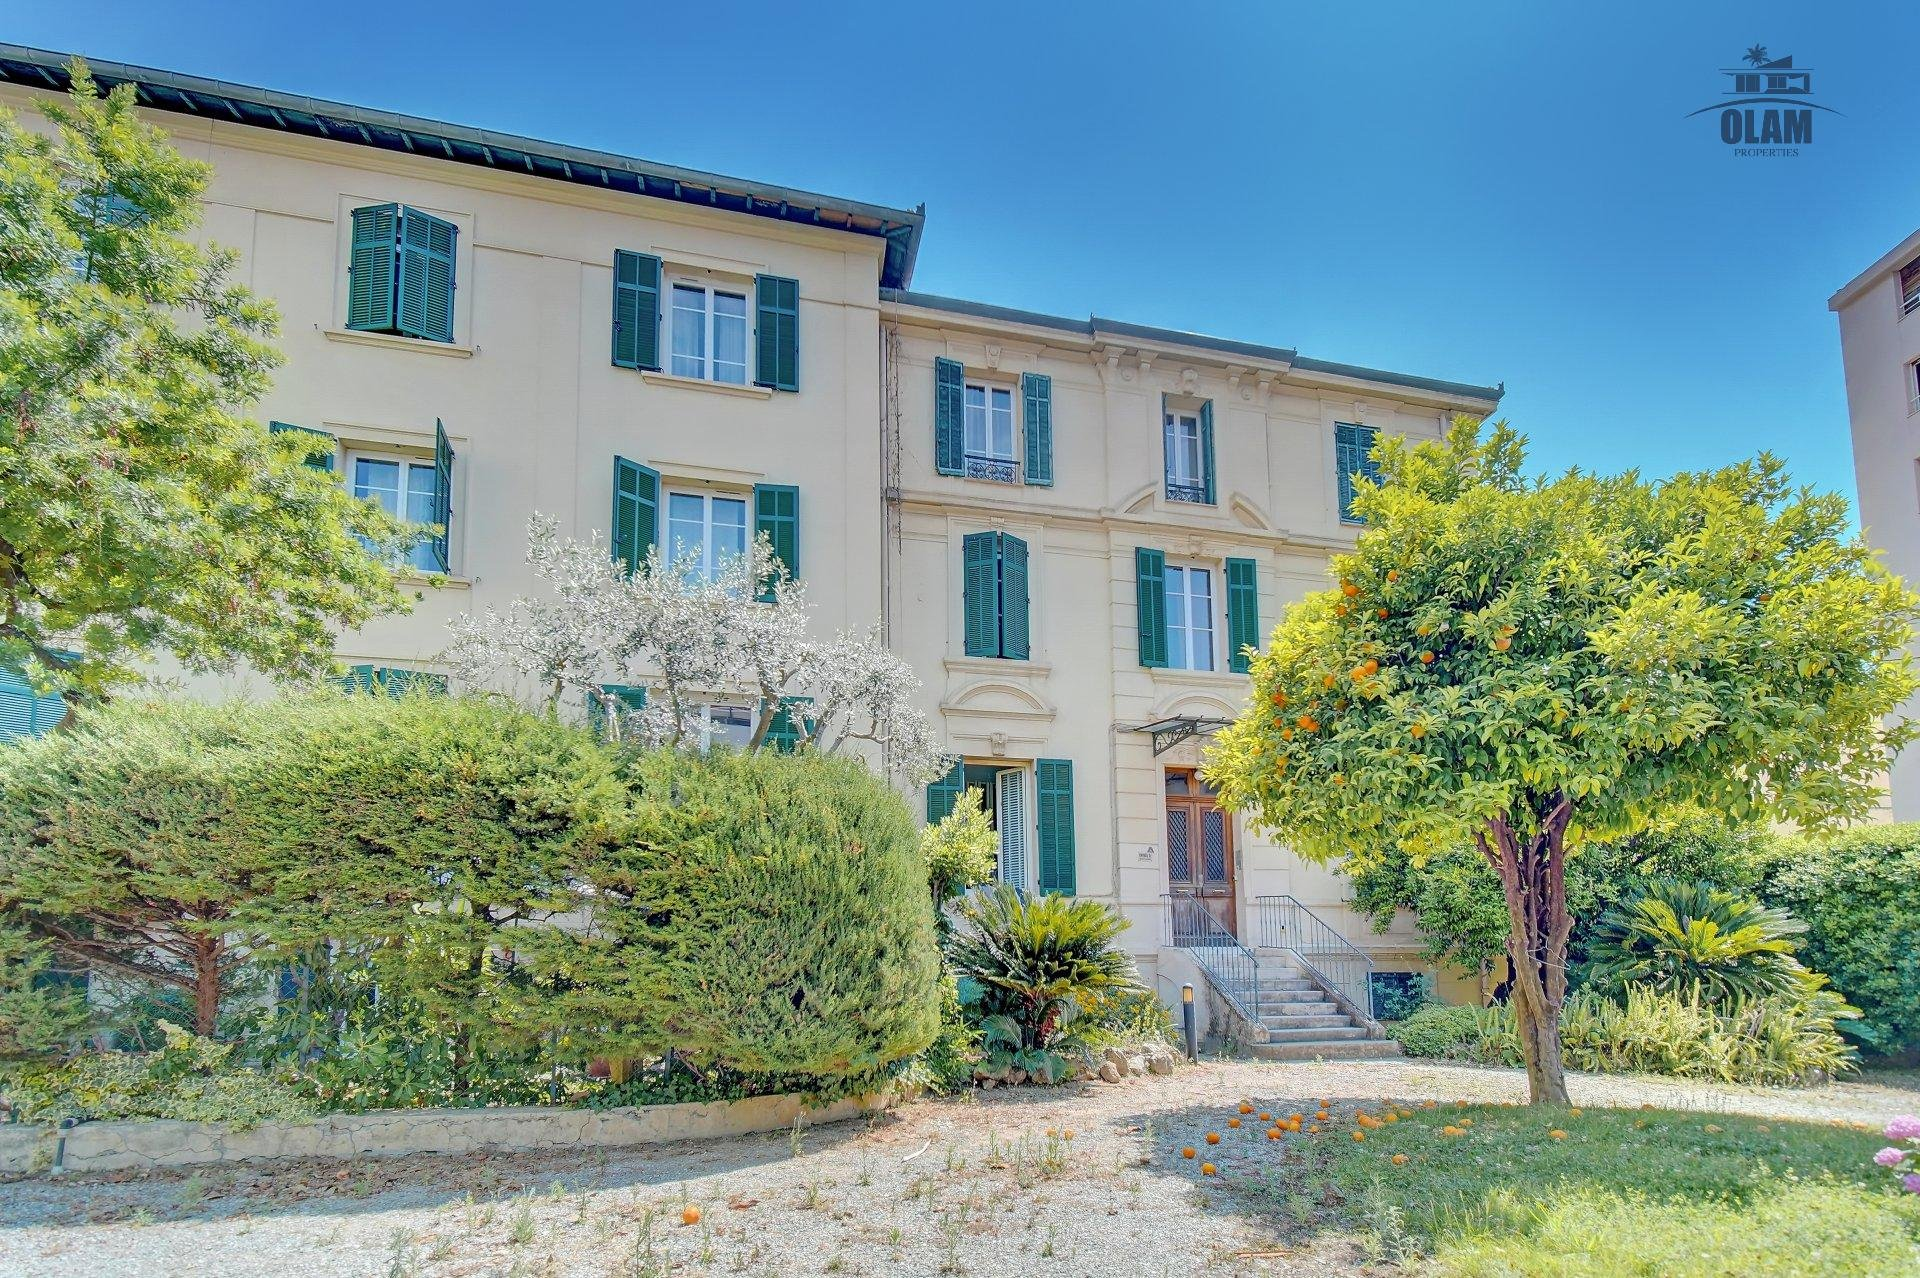 Superb 2-br in a bourgeois-style building - 2mn from Rue d'Antibes